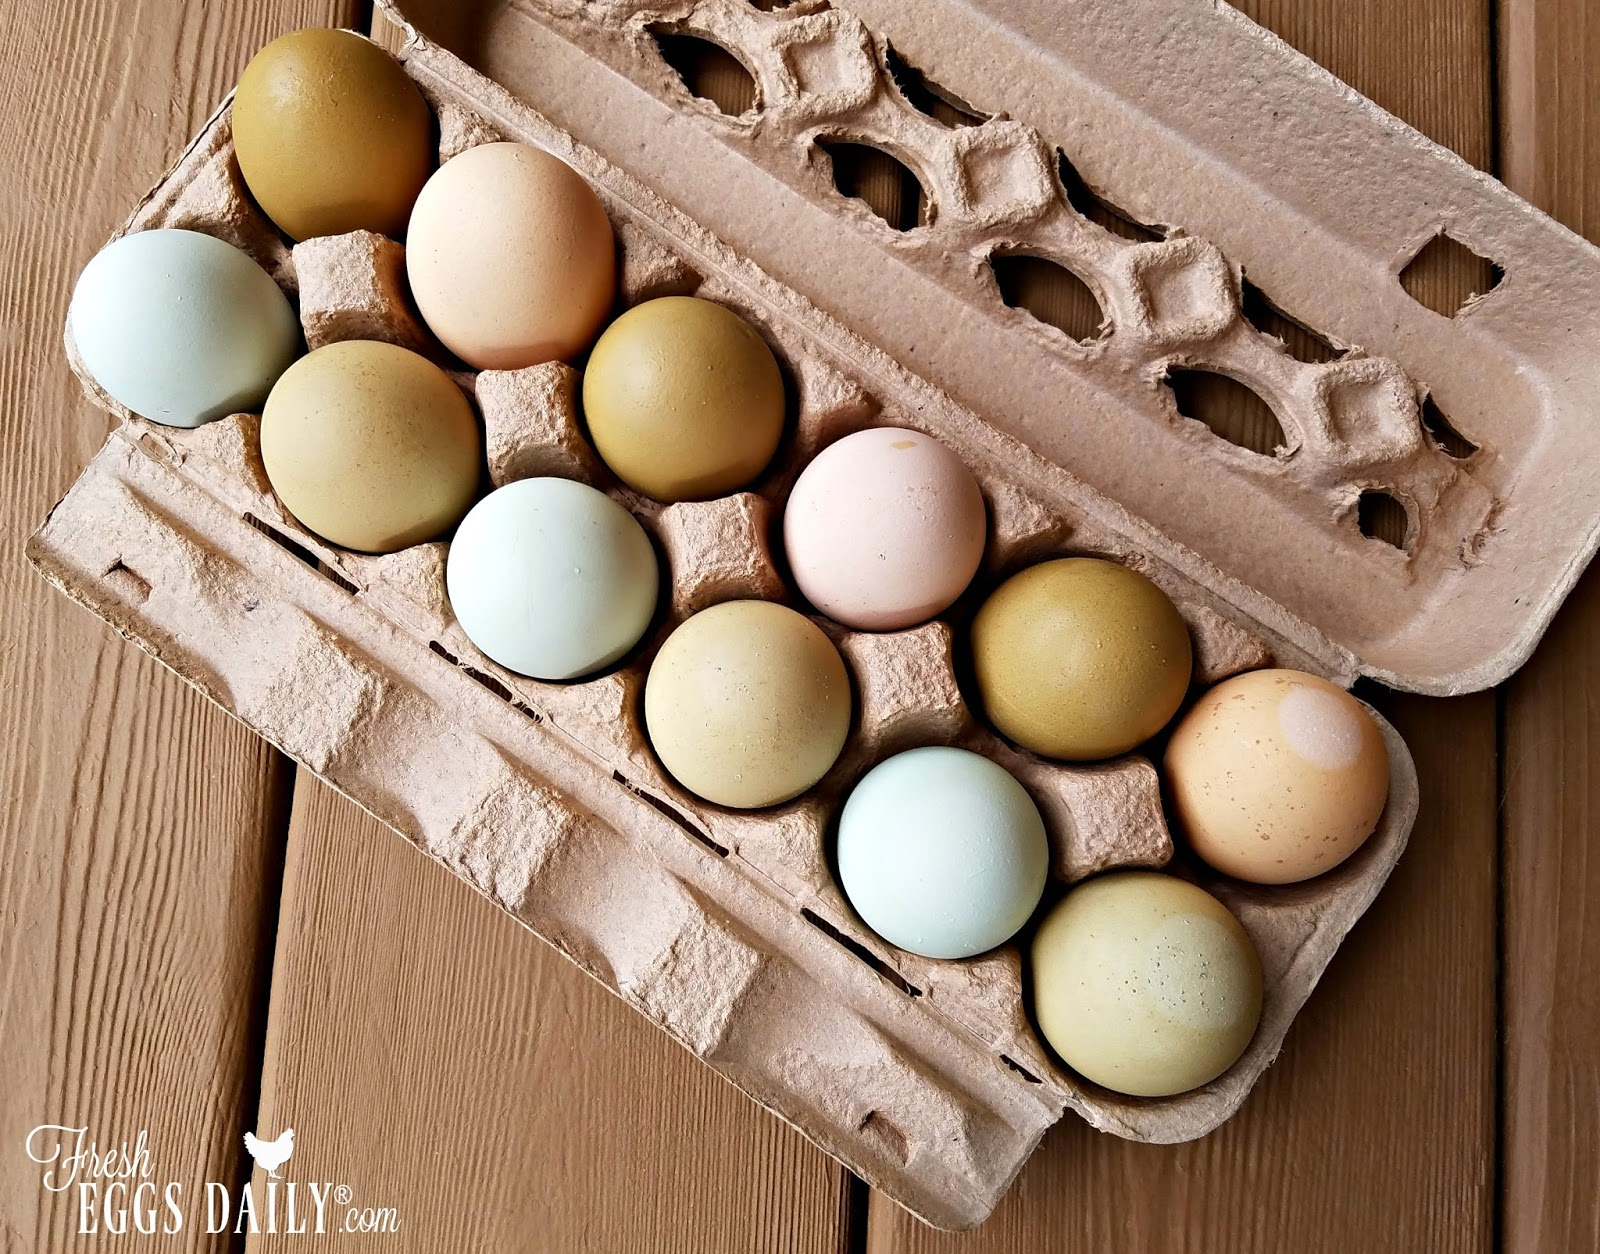 7 Tips to Help You Sell Your Farm Fresh Eggs For More Money